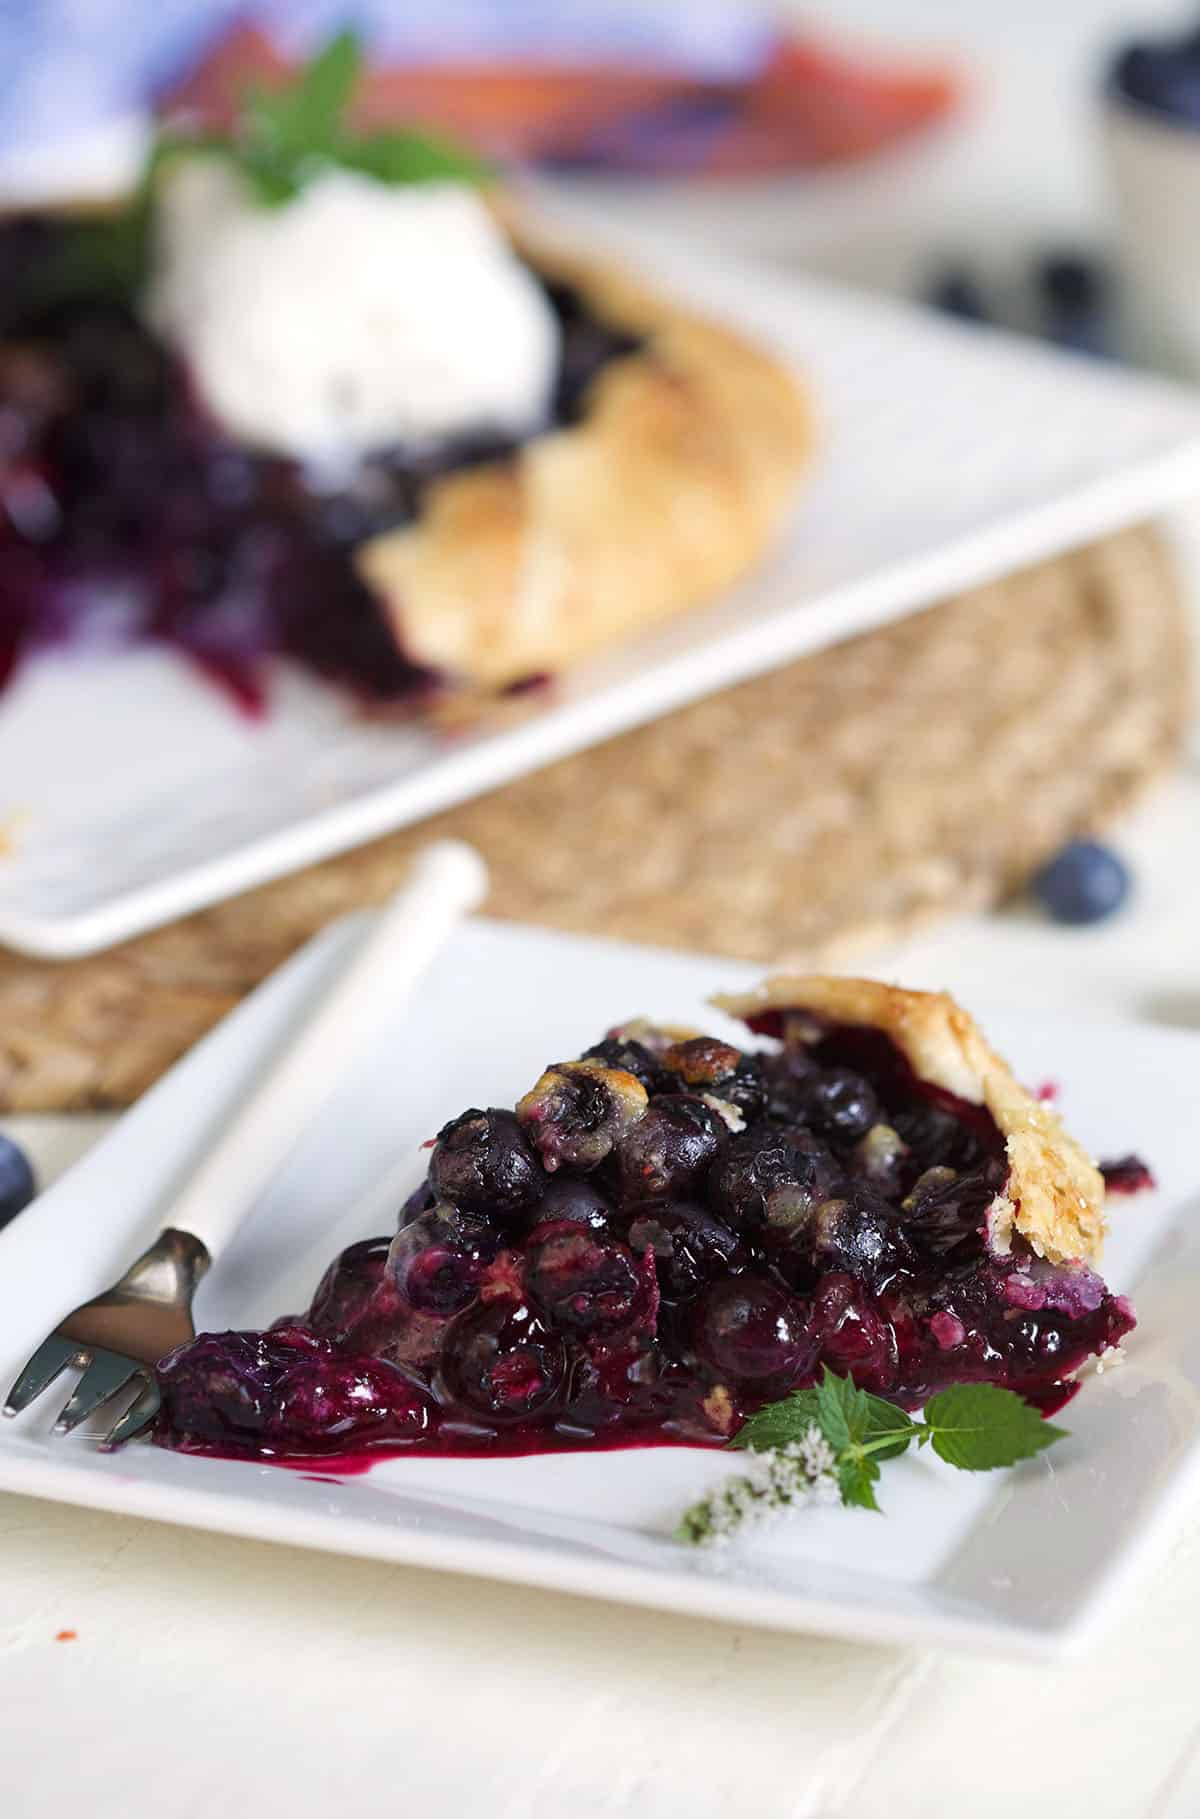 Slice of blueberry galette on a white plate